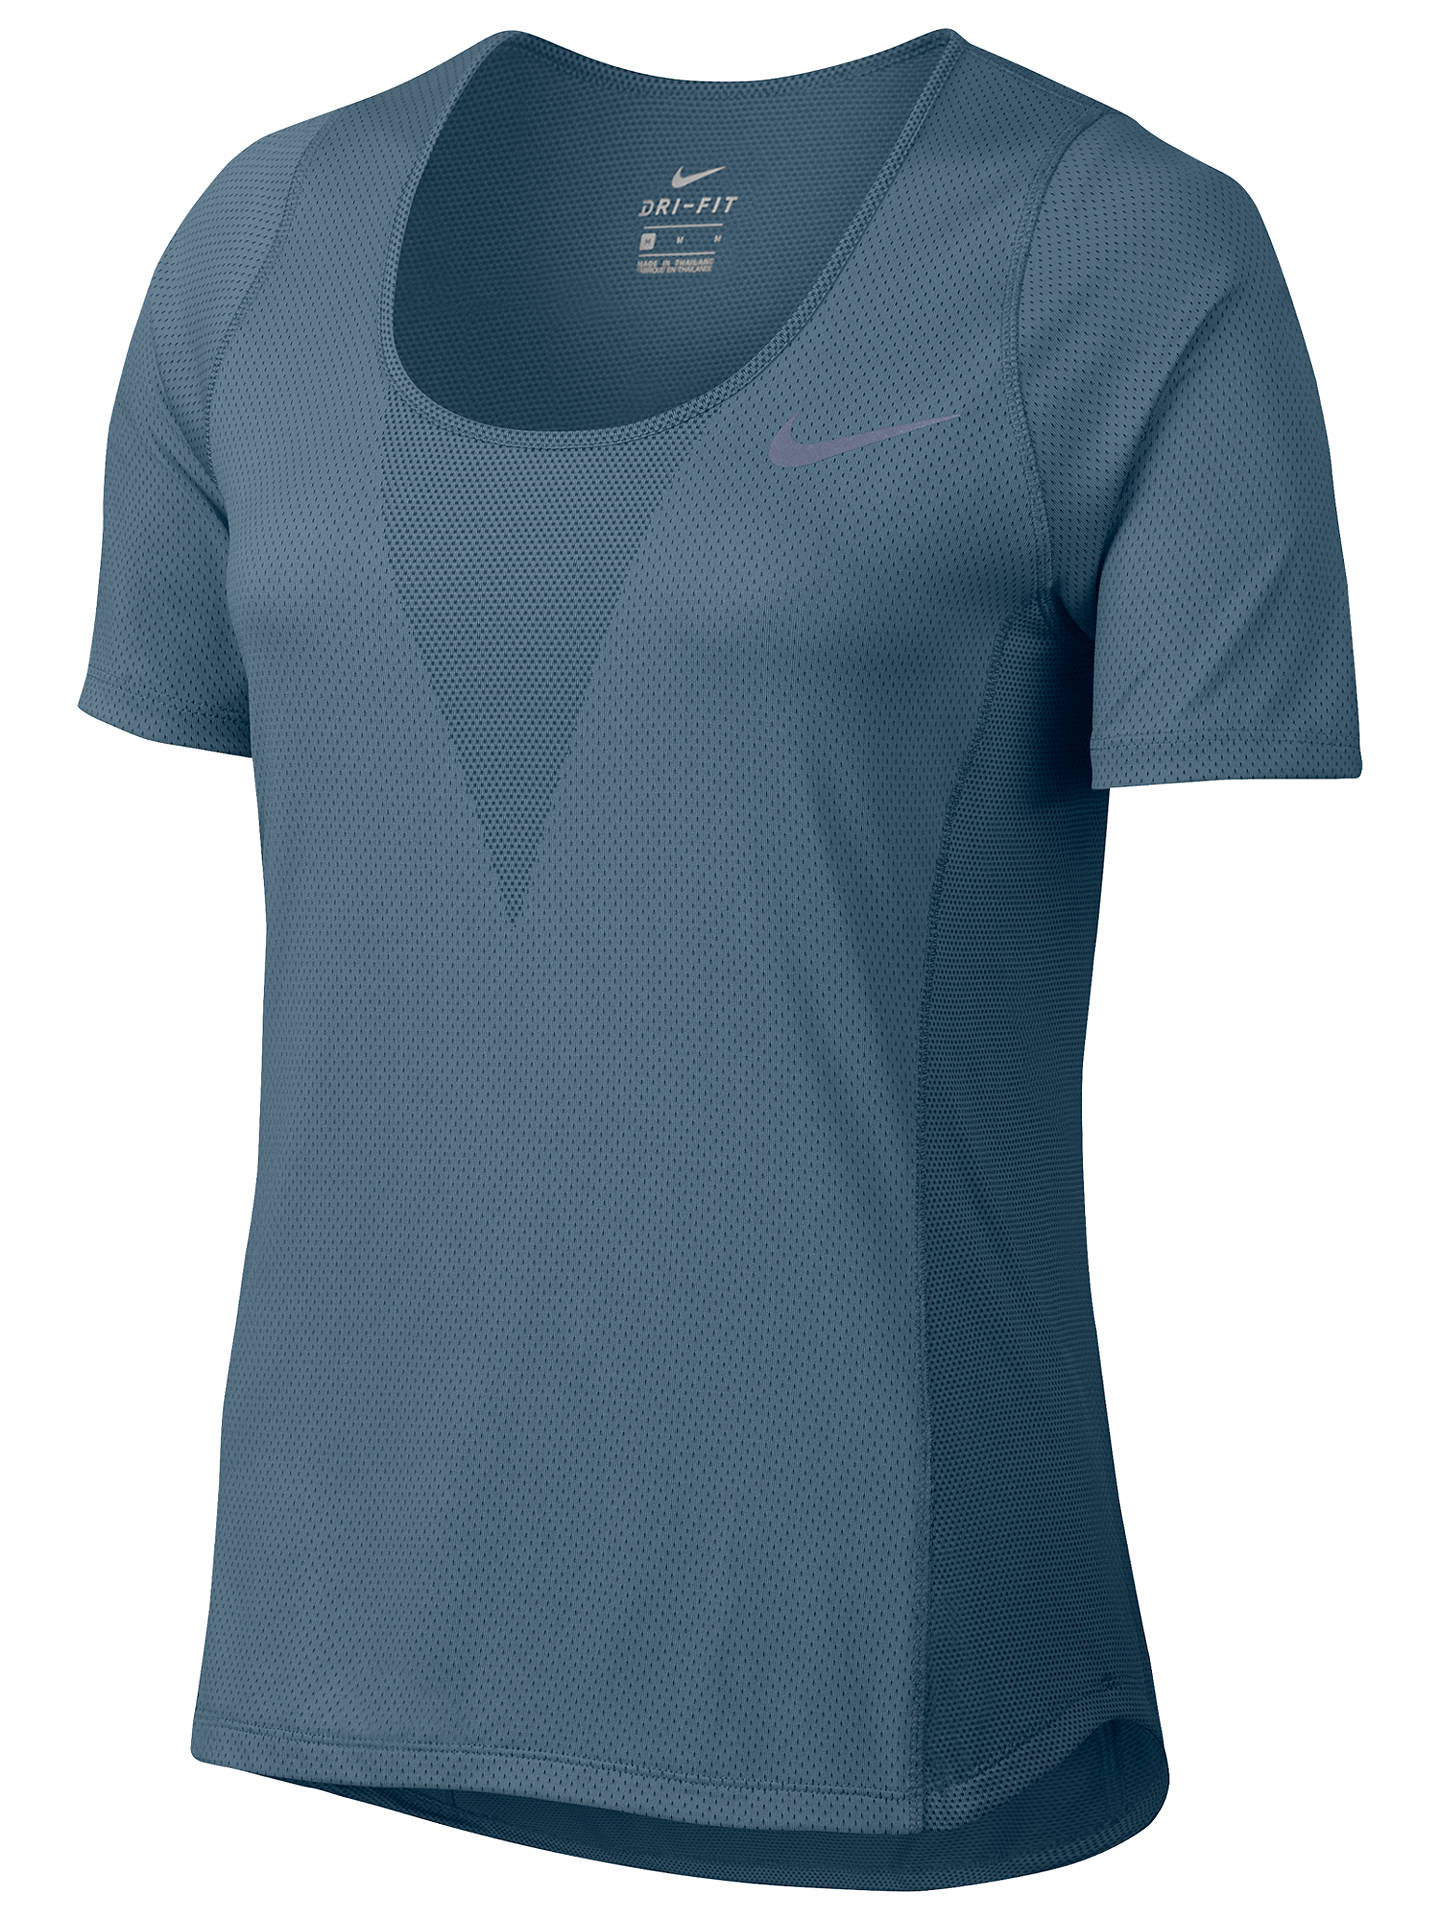 Activewear Nike Zonal Cooling Top And To Have A Long Life.